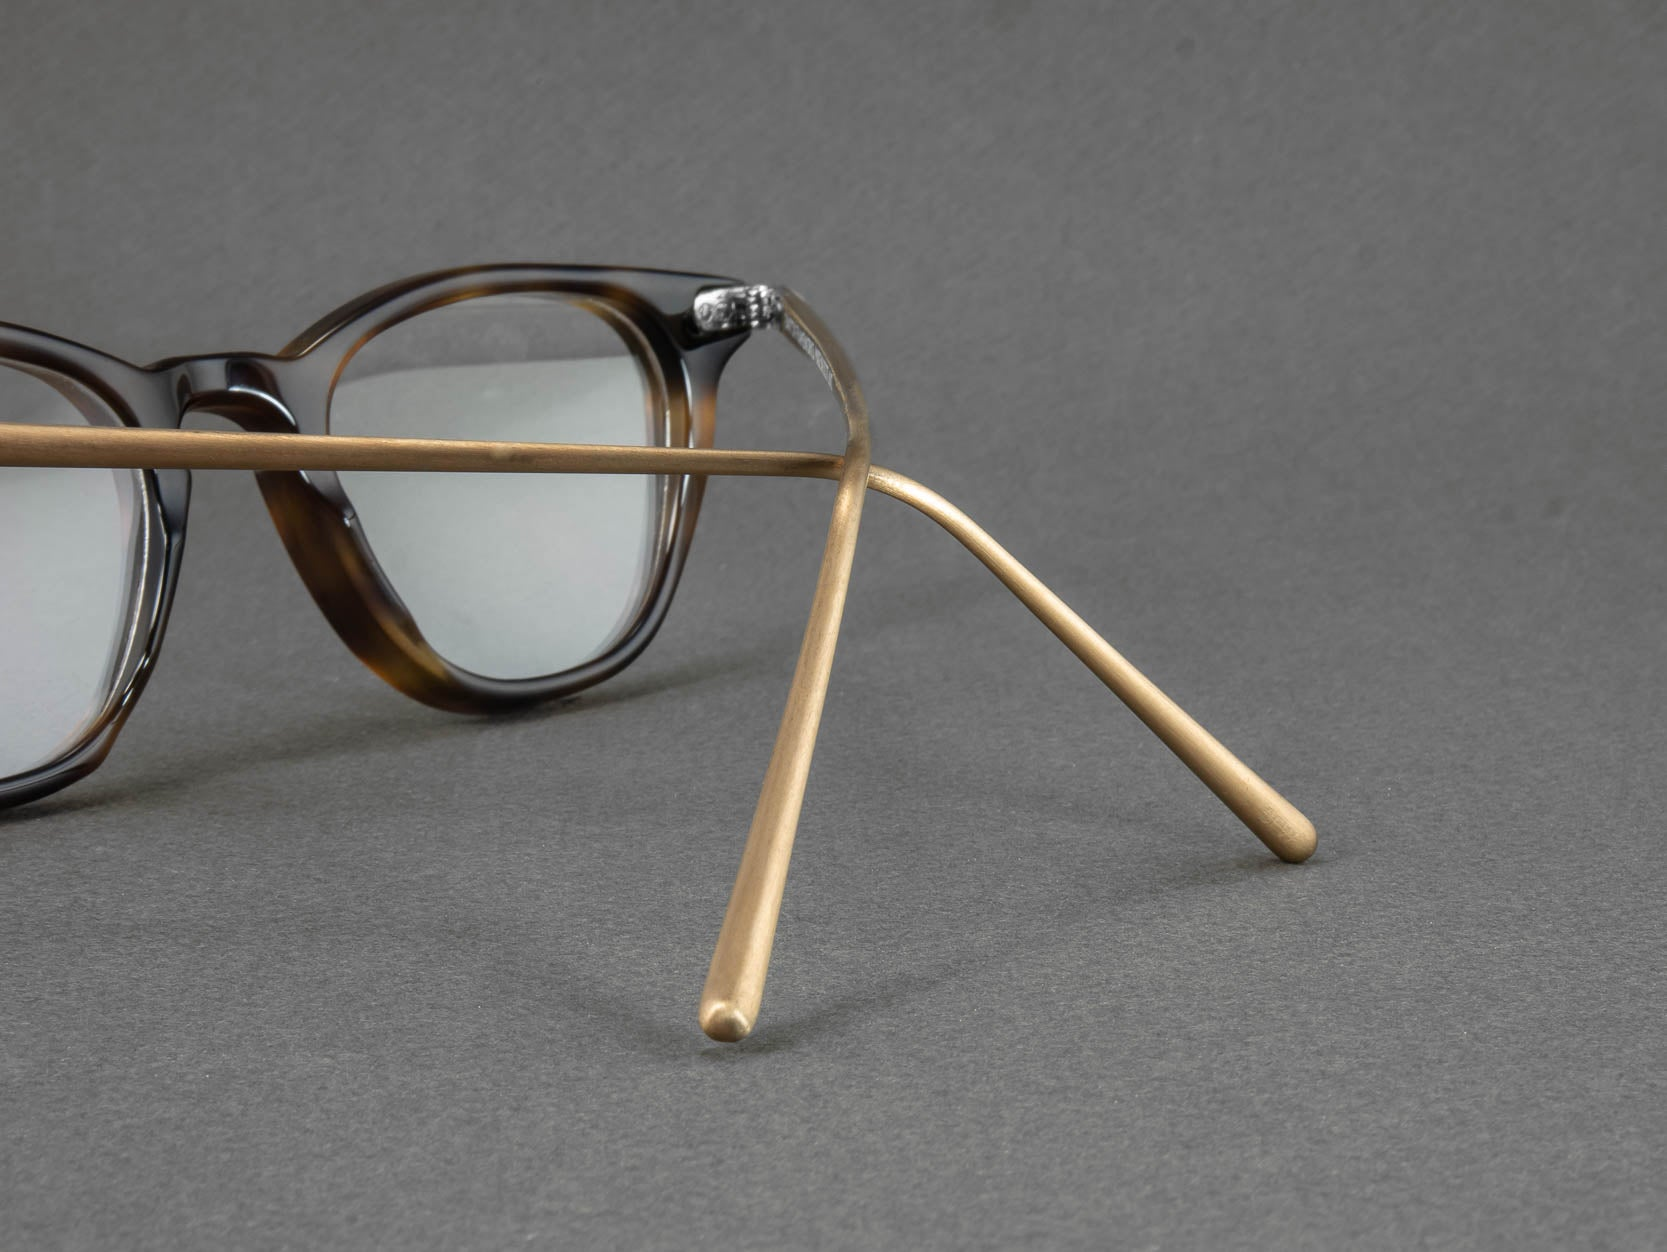 tortoiseshell glasses temple close up